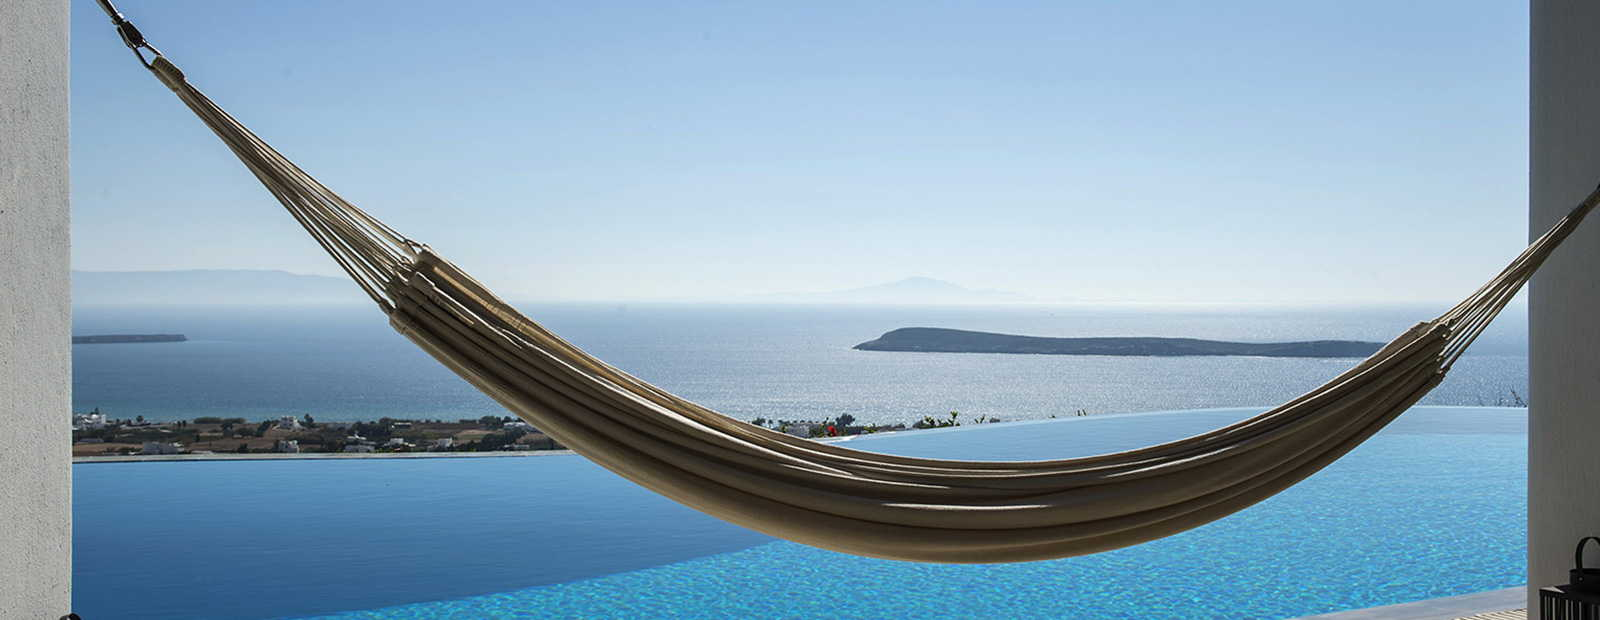 Luxurious holiday villas on Paros island